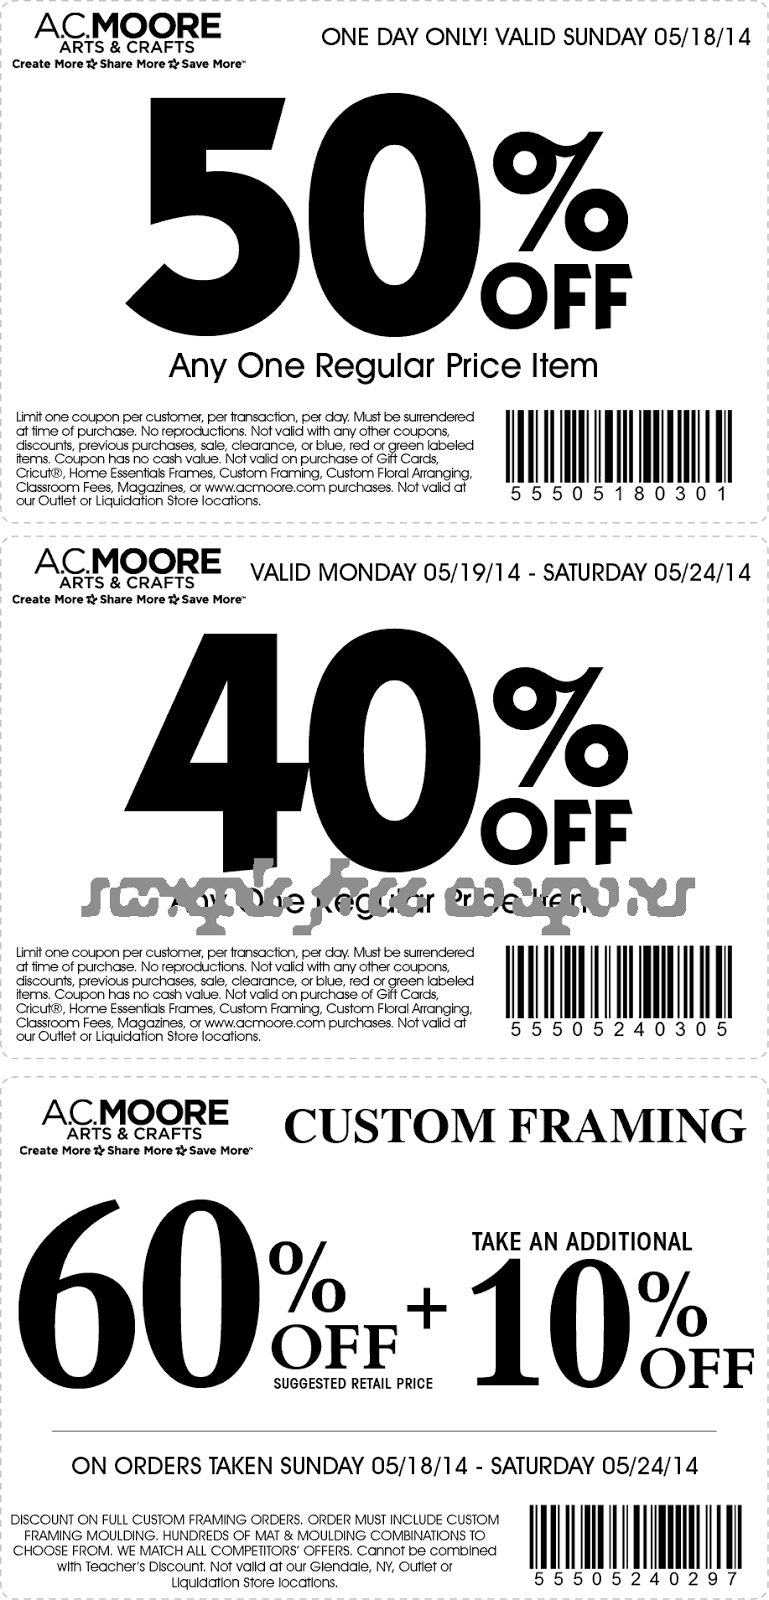 Ac moore discount coupons